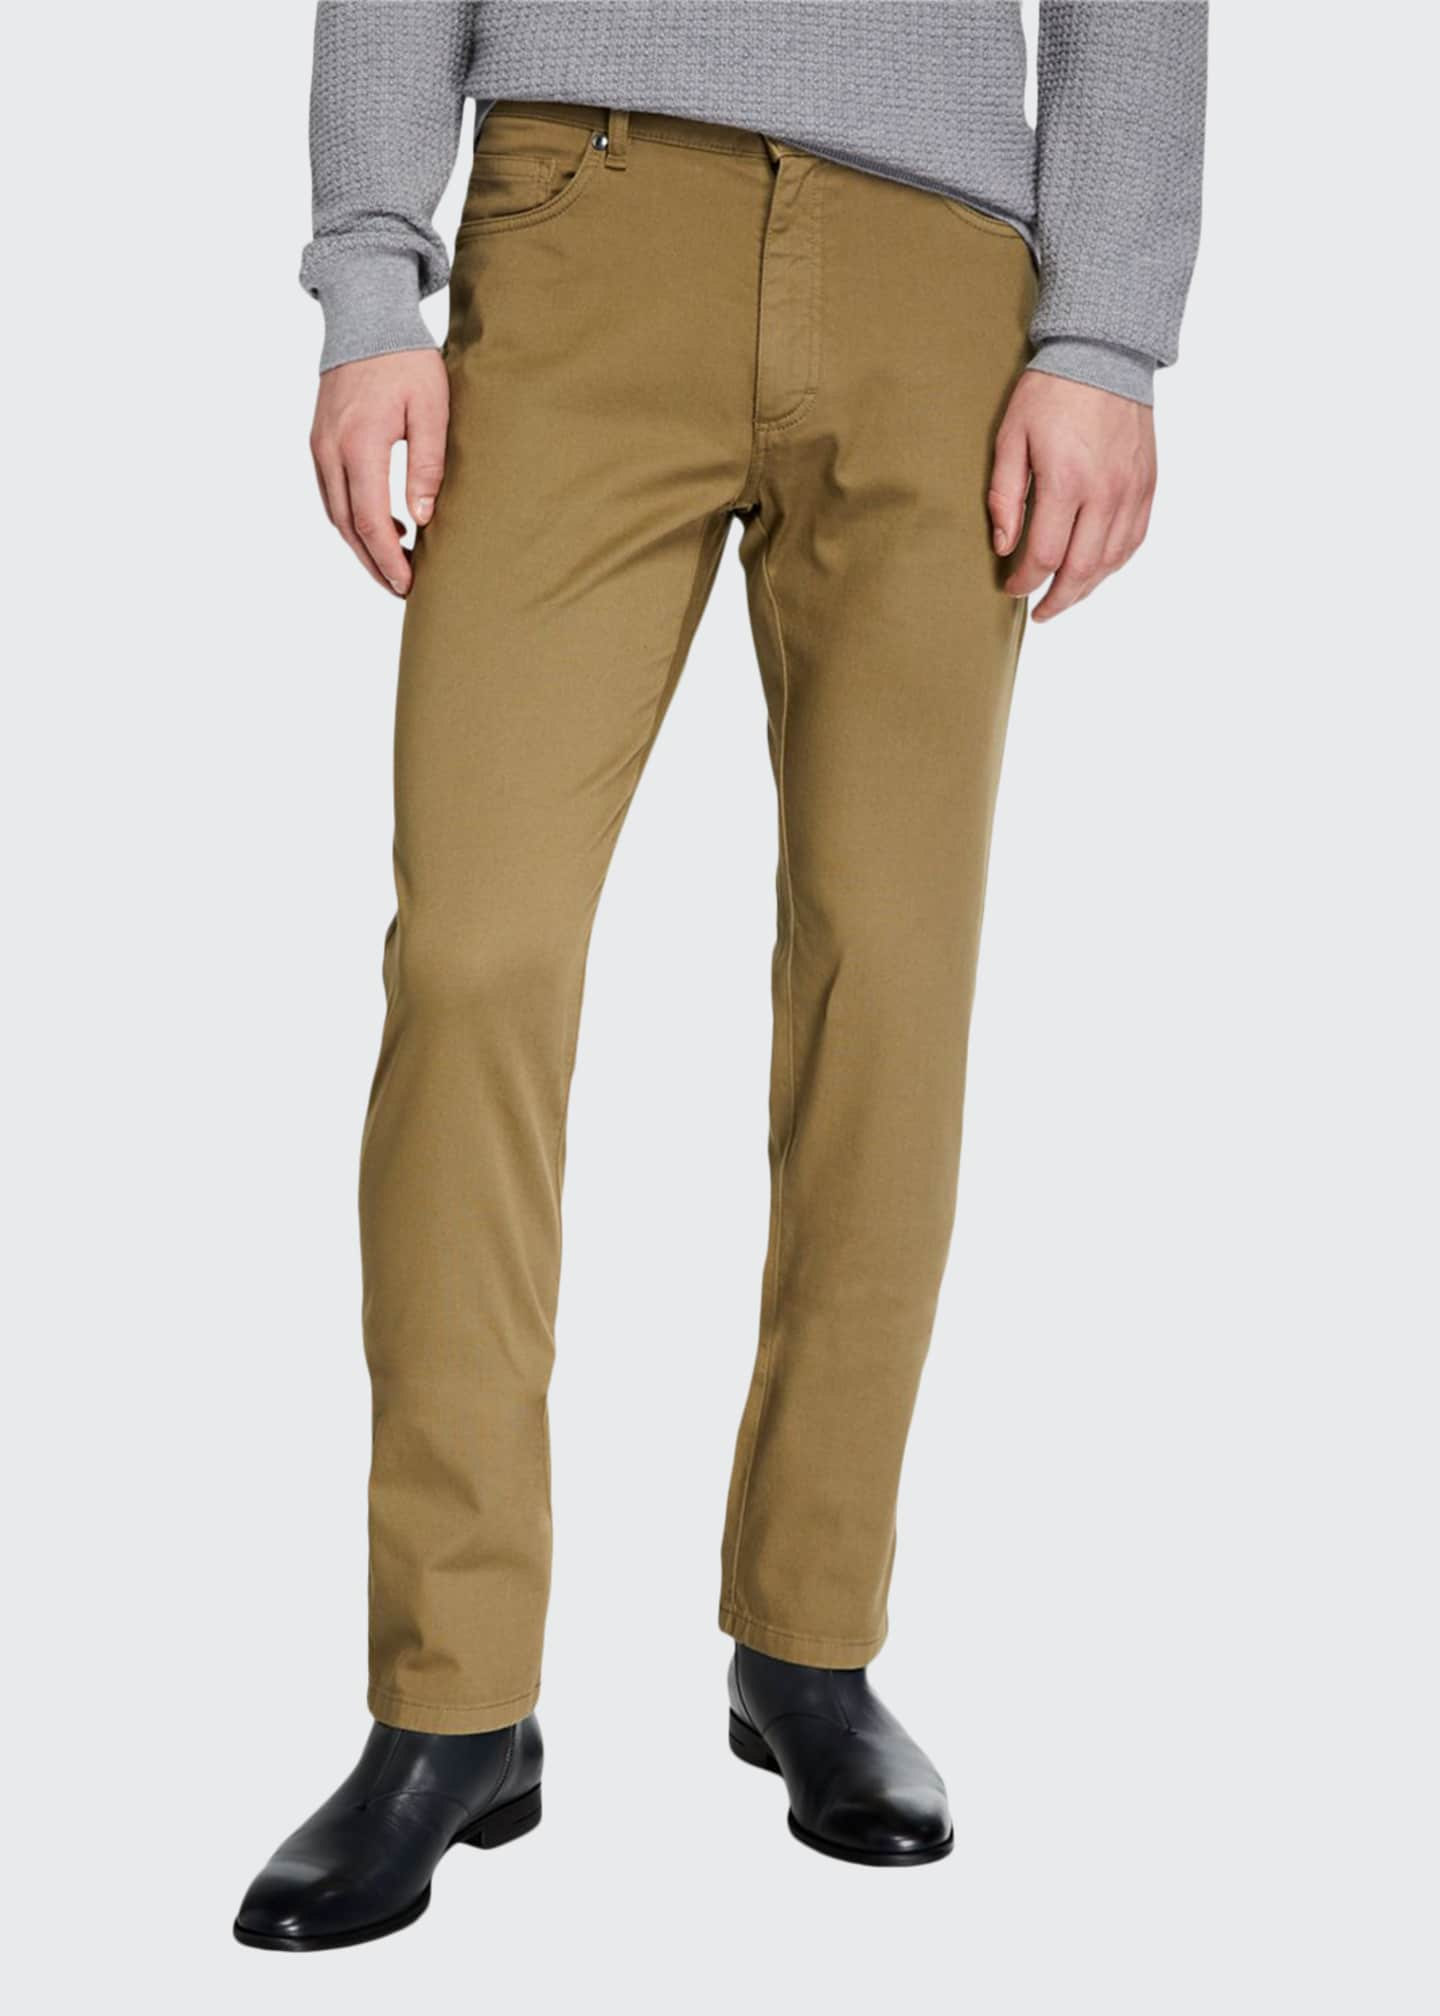 Men's 5-Pocket Straight-Leg Canvas Regular-Fit Pants